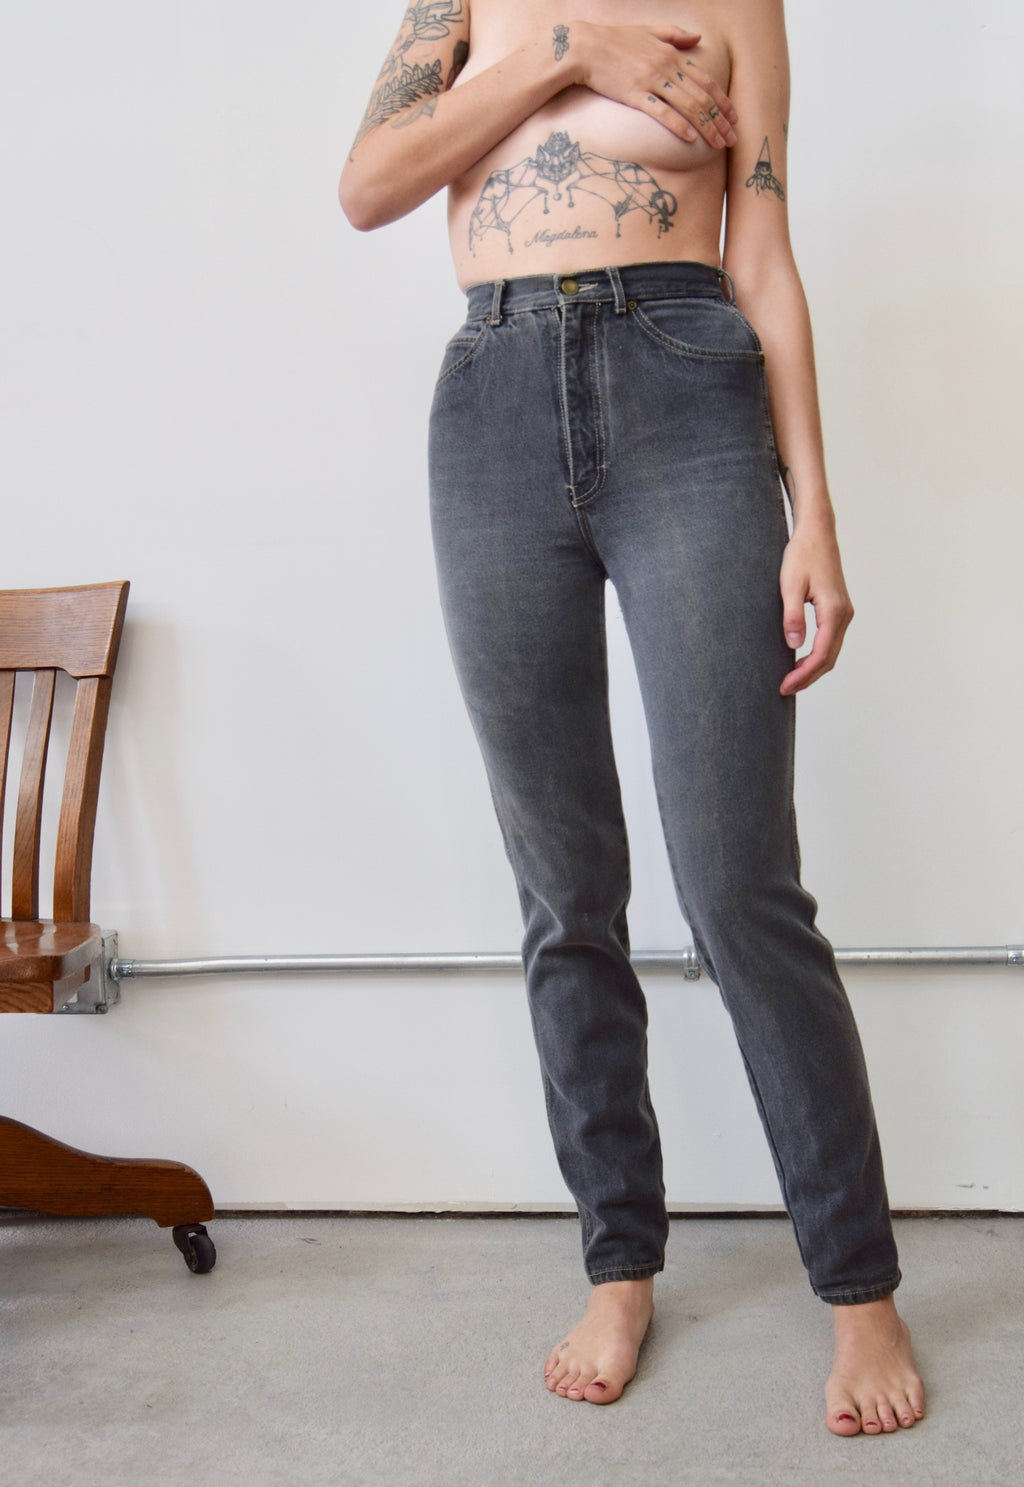 80's 'Derrieres' Grey Jeans